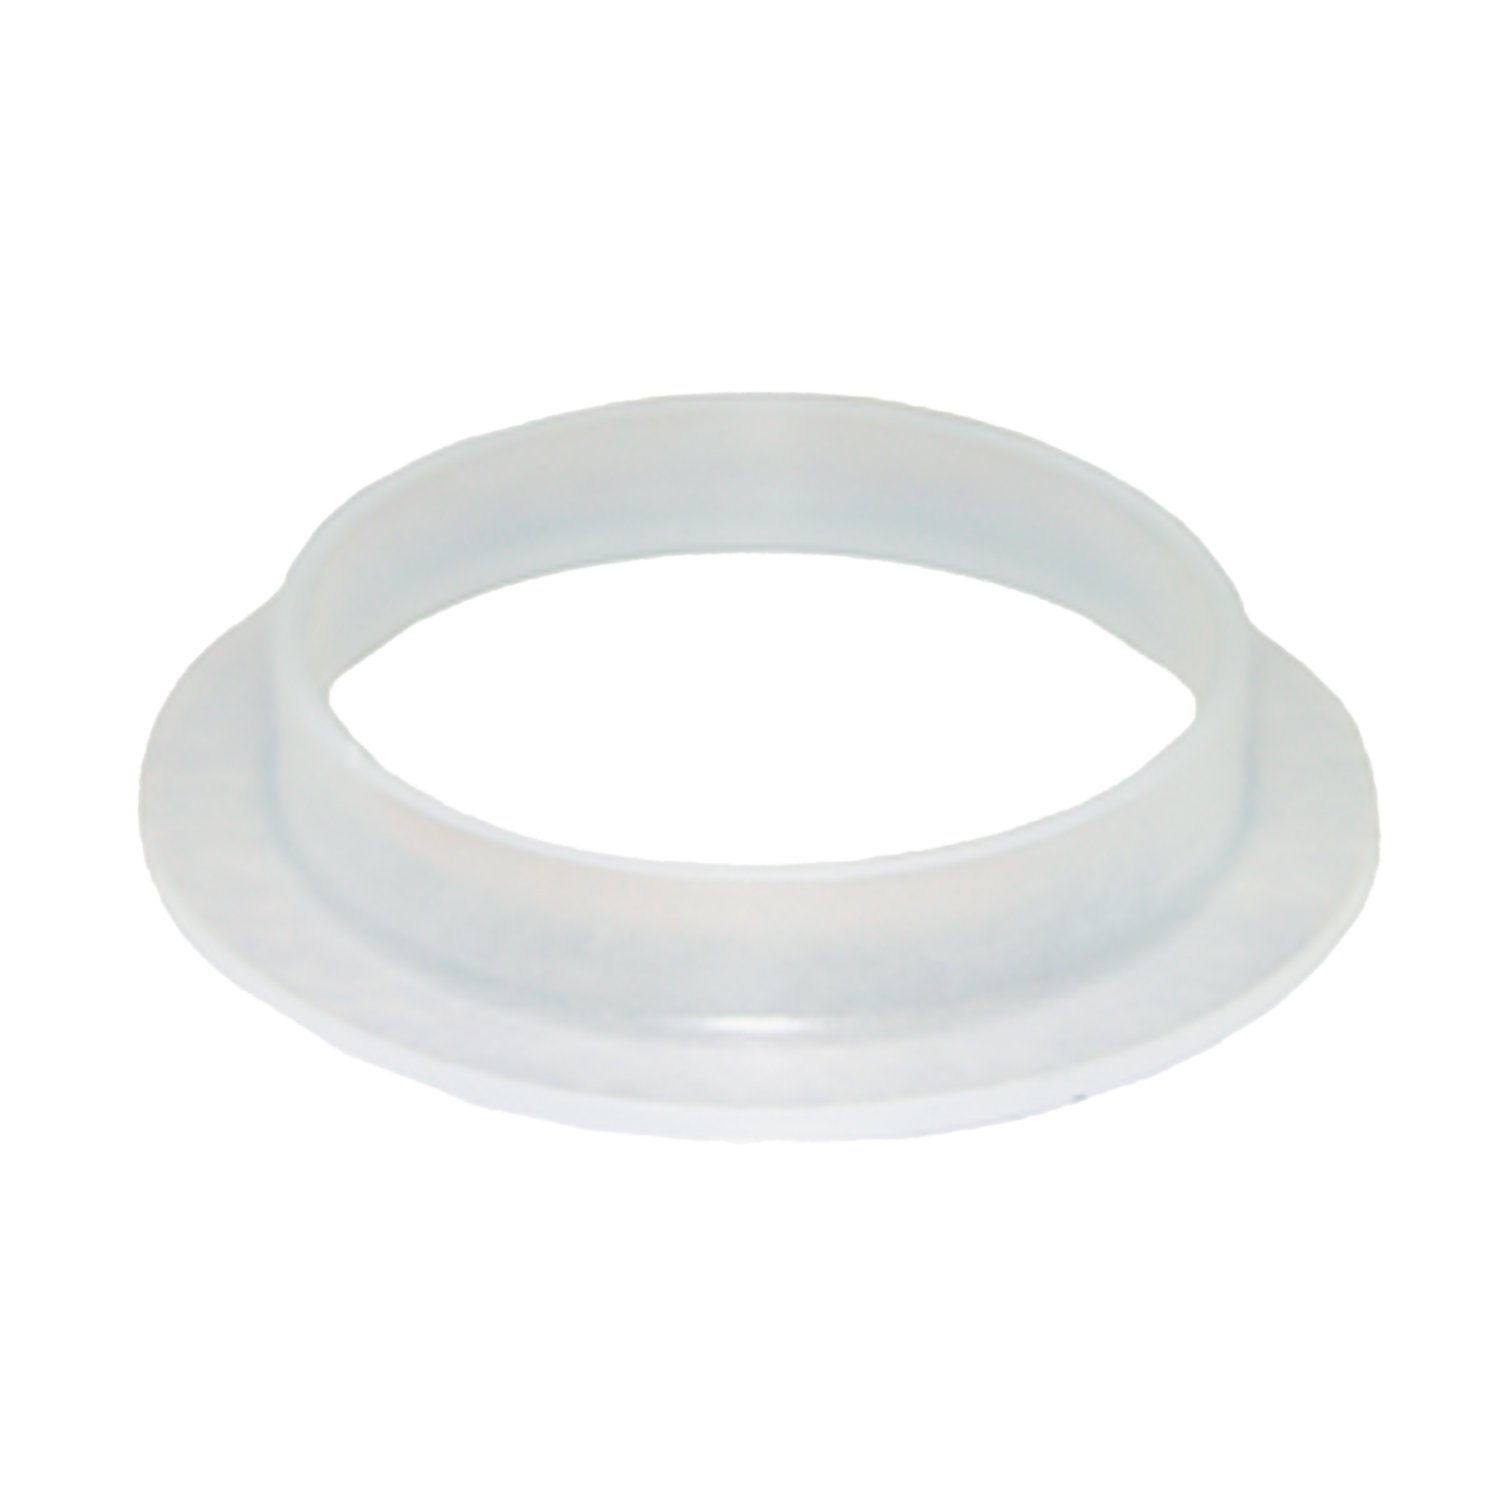 LASCO 02-2050D Flanged Plastic Sink Connection Washer for 1-1/2'' OD Plastic Tubular (Pack of 100)